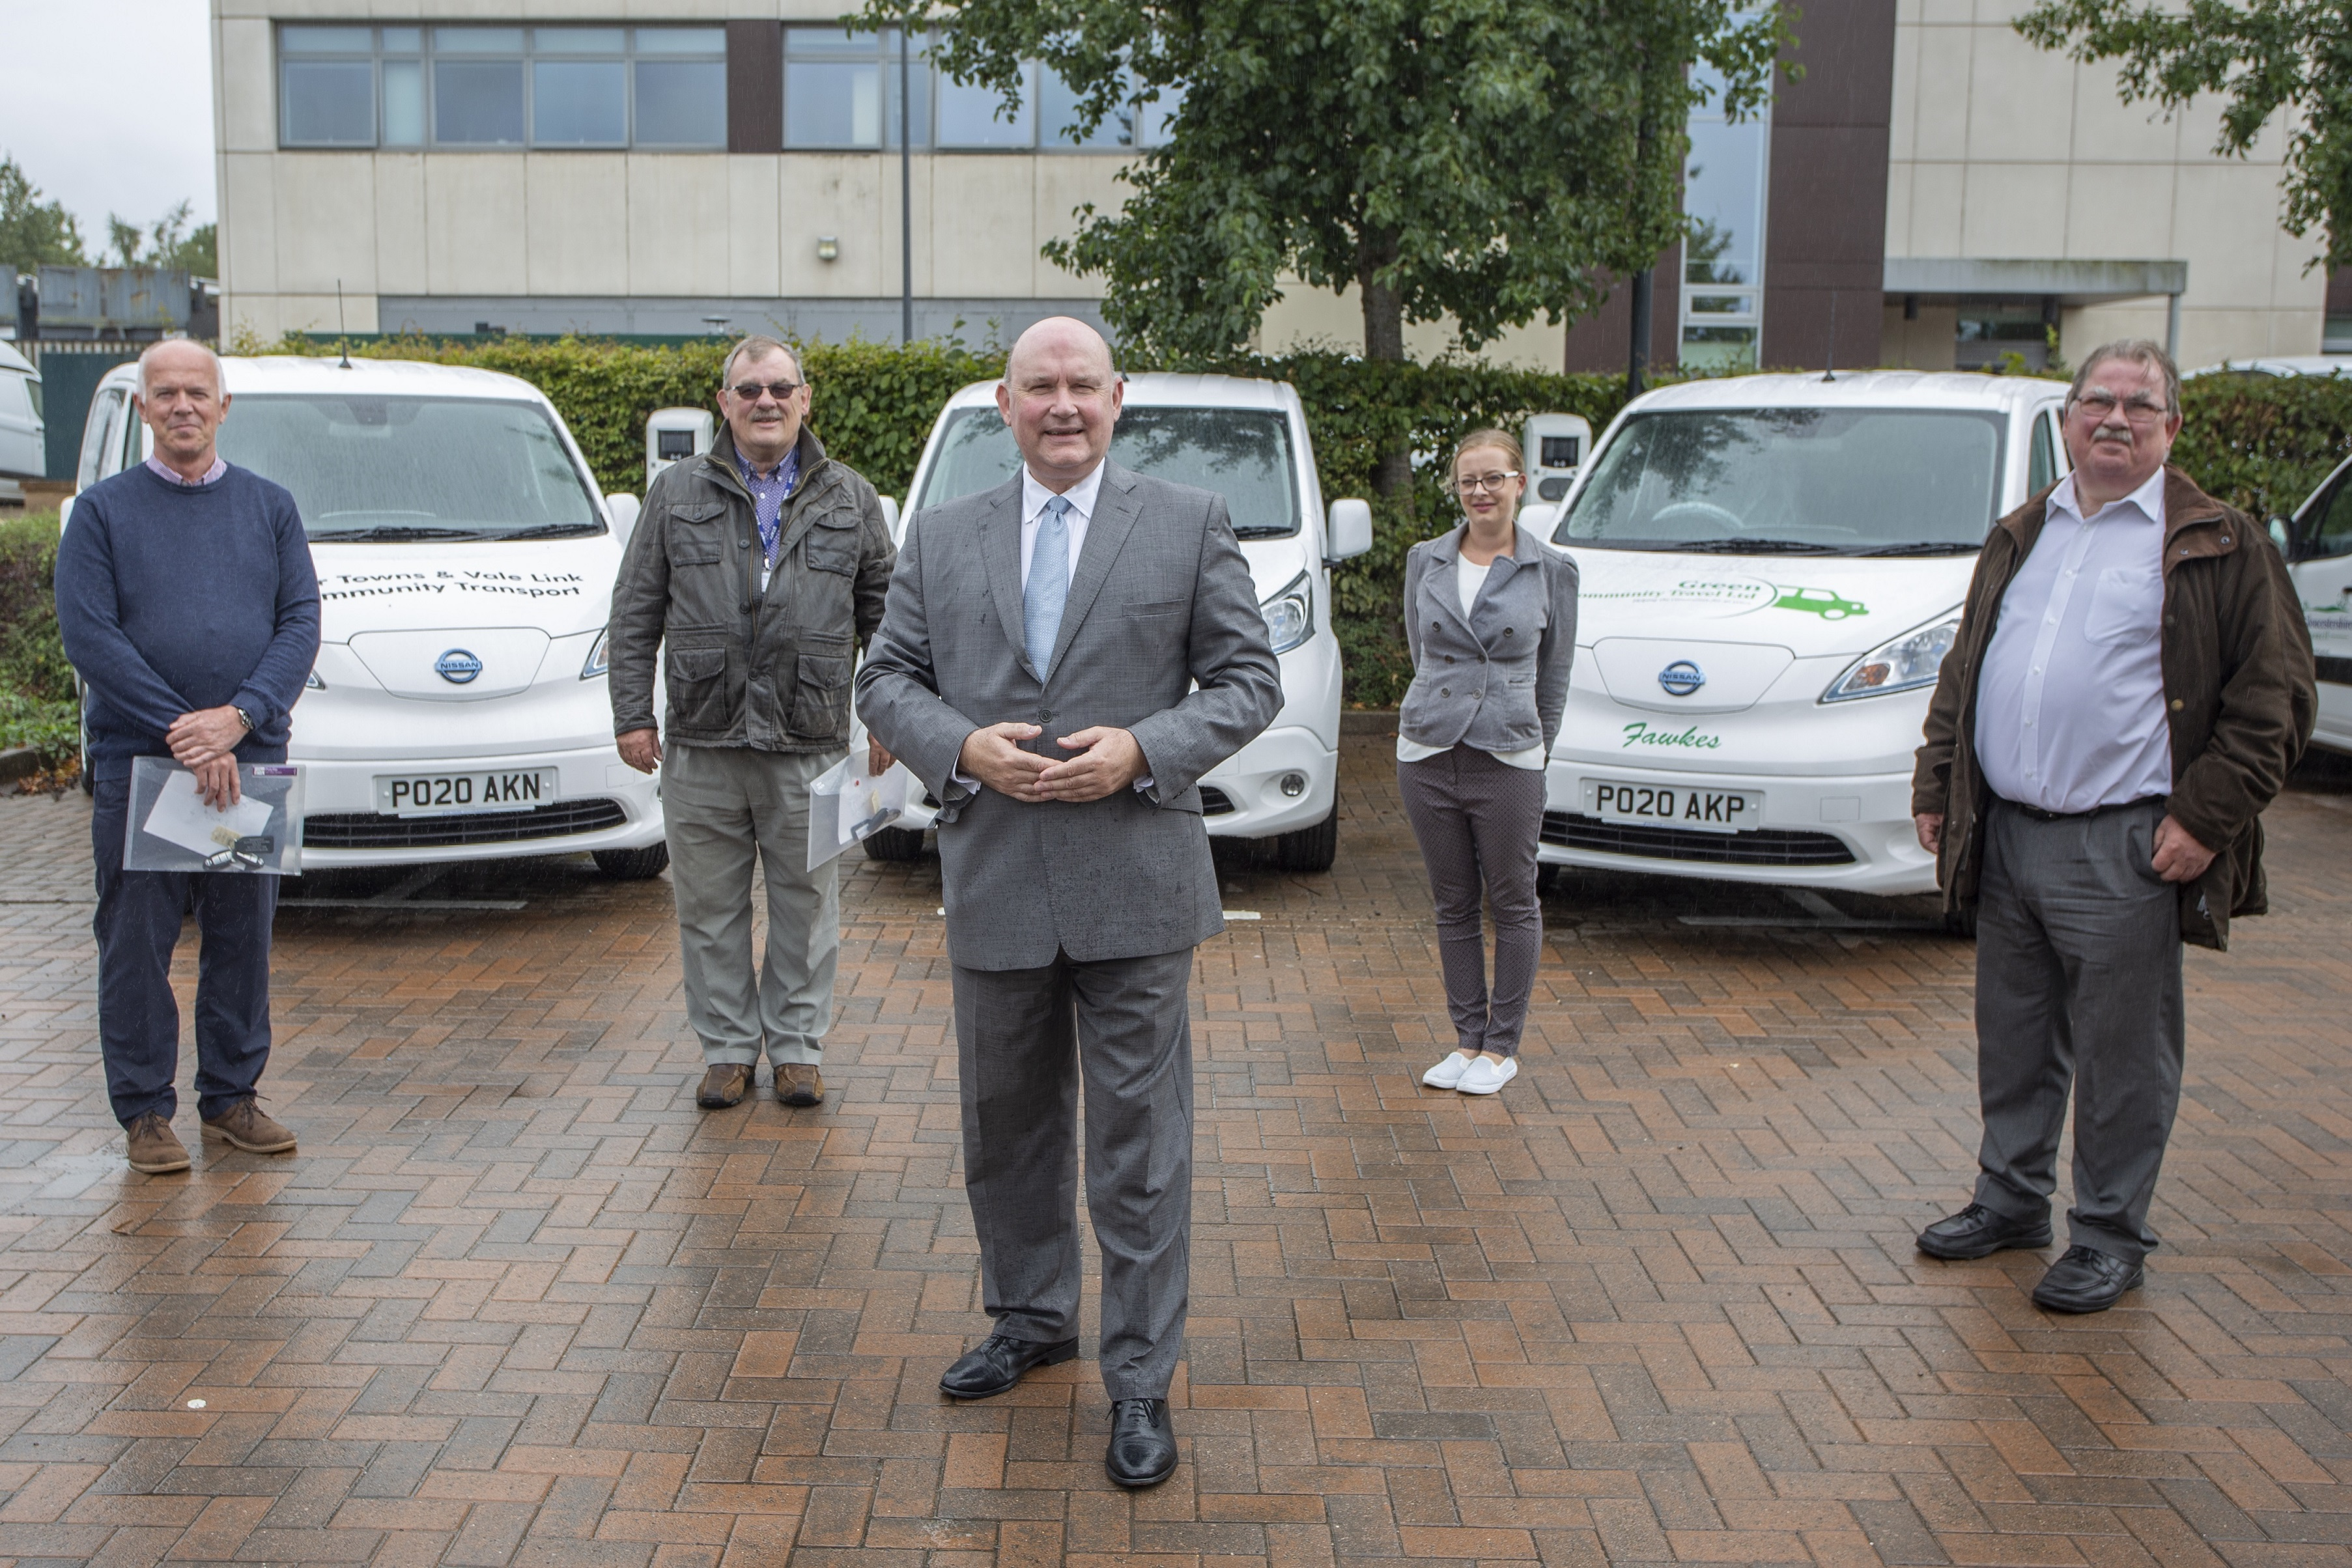 West of England Mayor Tim Bowles, Cllr Steve Reade, representatives for the community transport operators and the new vehicles